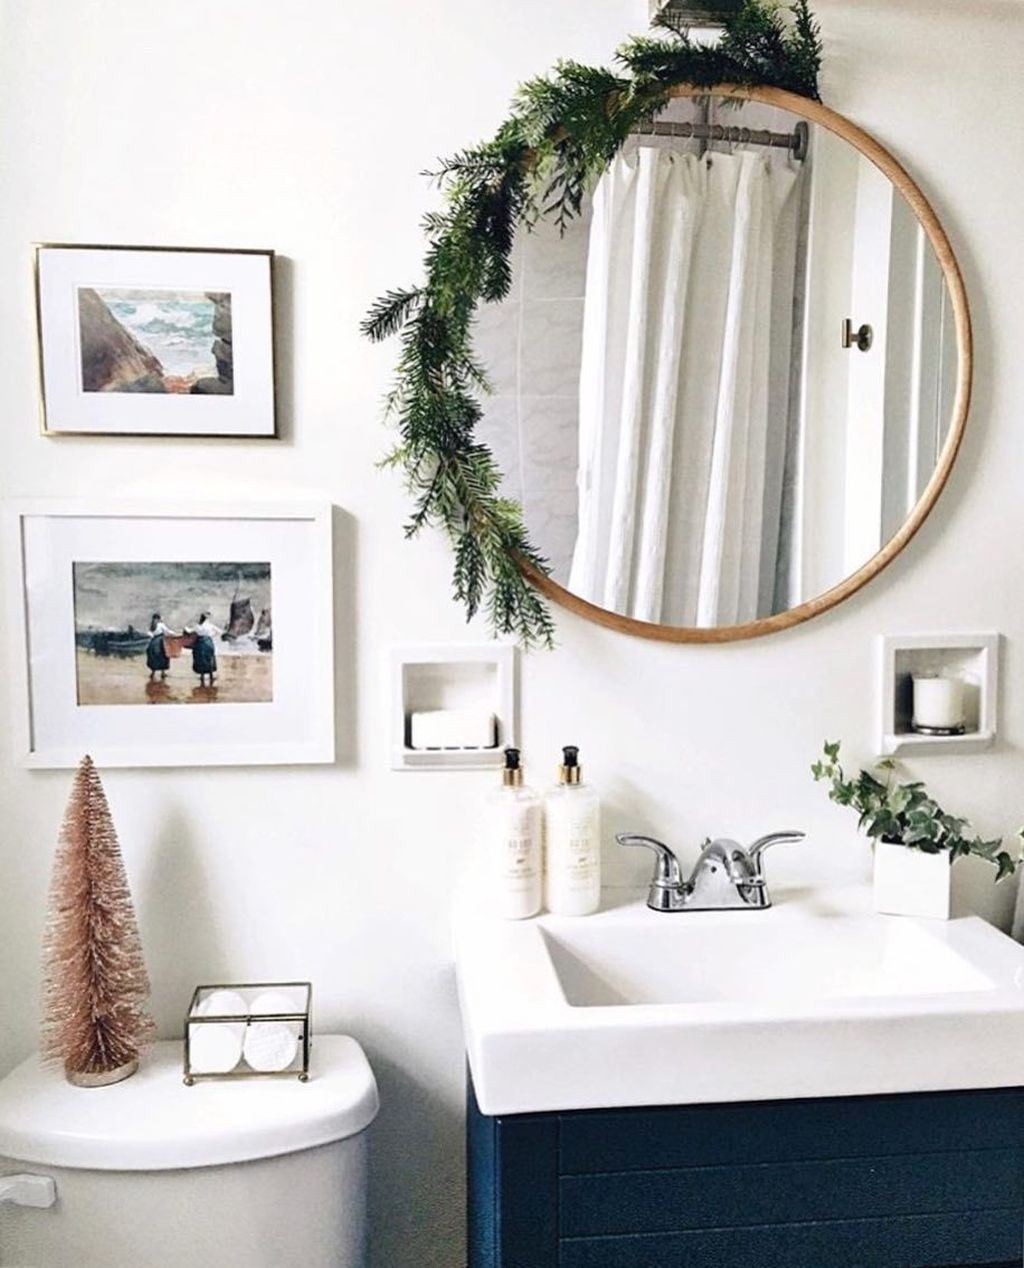 Stunning Winter Bathroom Decor Ideas 23